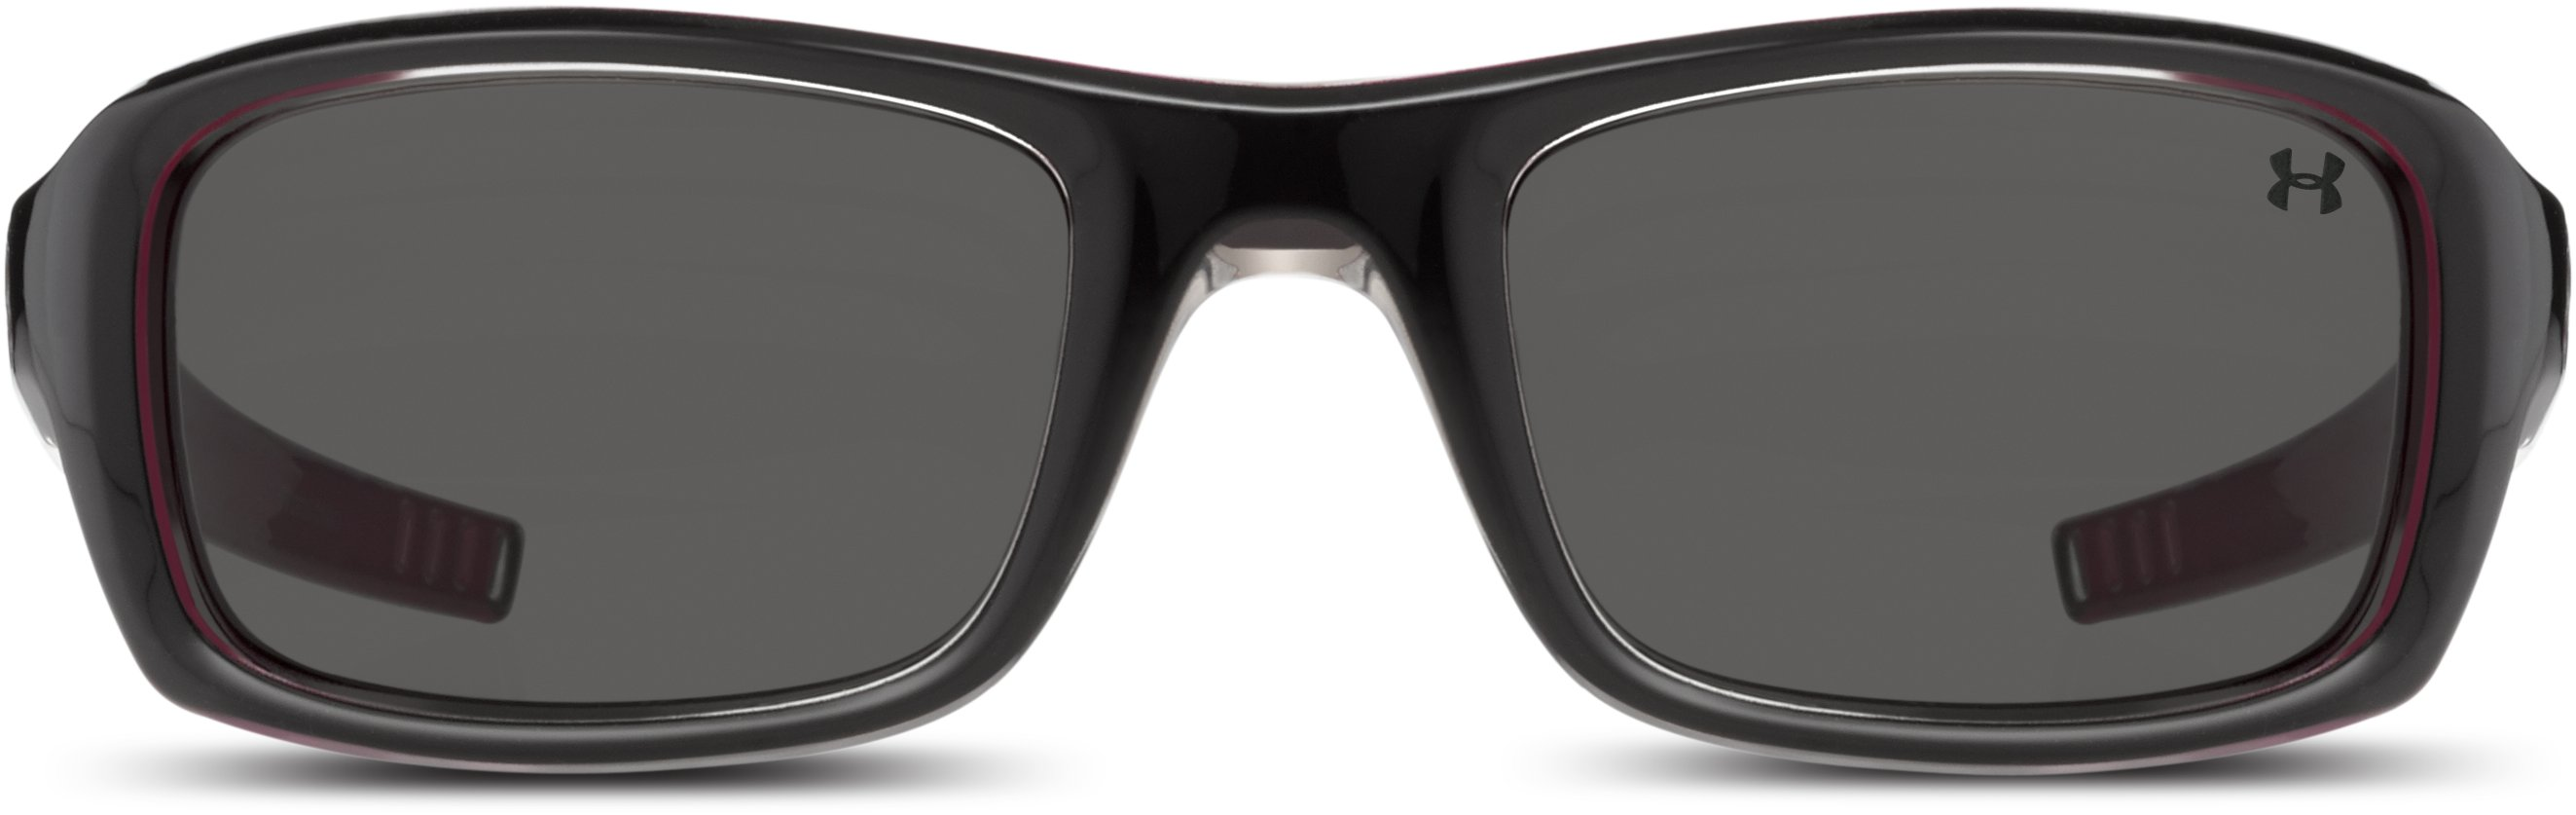 UA Surge Sunglasses, Shiny Black